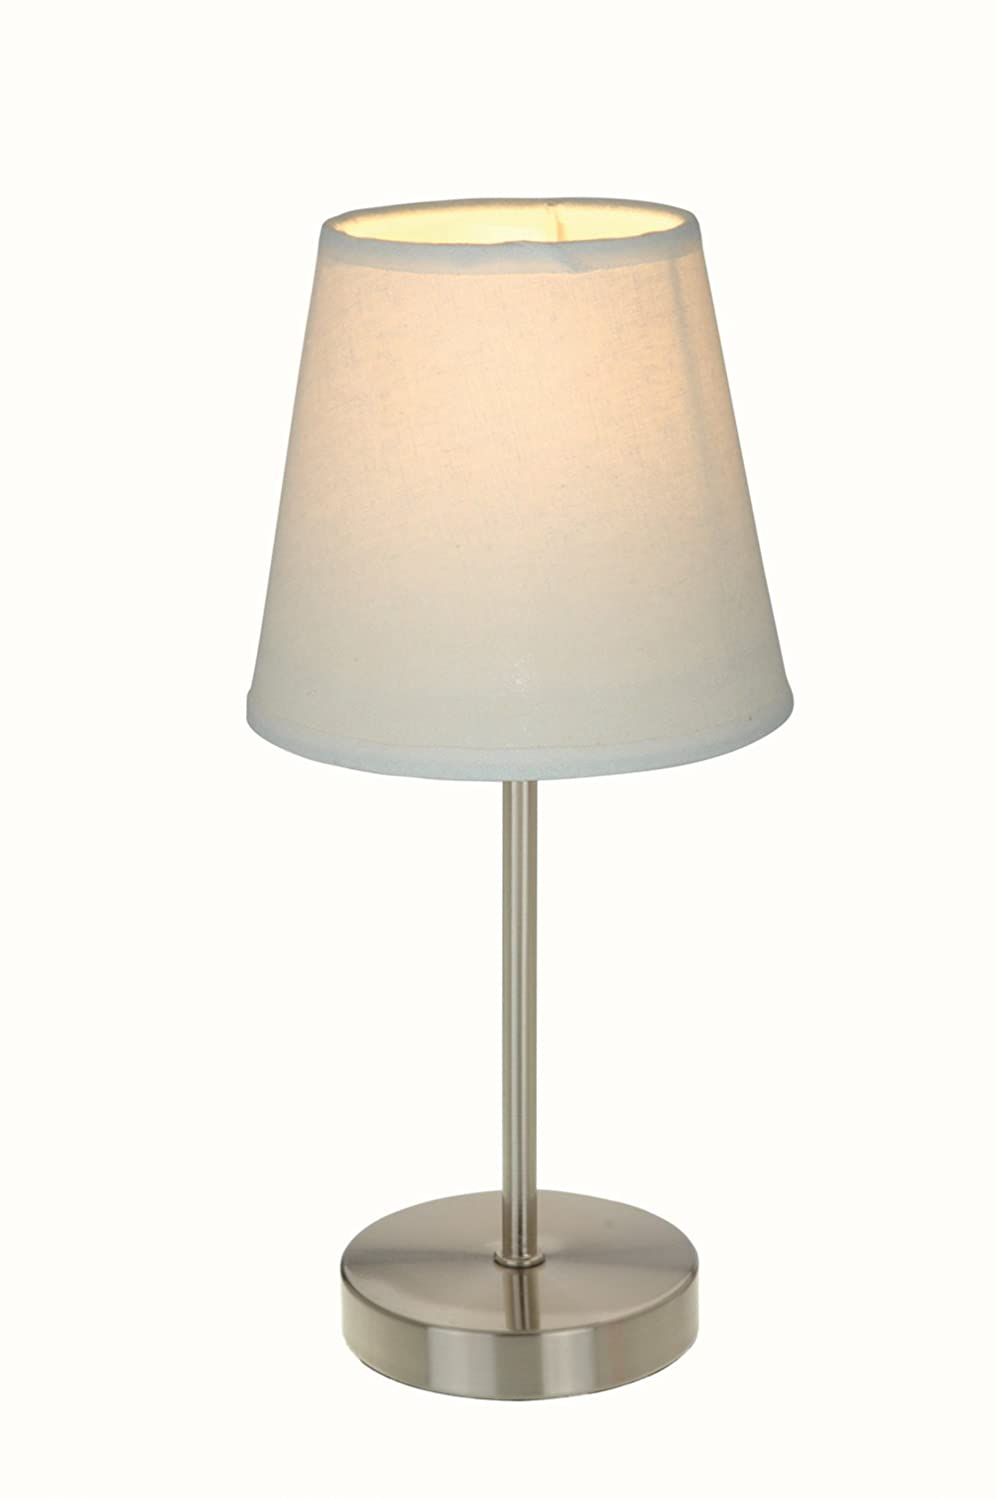 "Simple Designs Home LT2013-WHT Sand Nickel Simple Designs Mini Basic Table Lamp with Fabric Shade, 4.88"" x 4.88"" x 10"", White"